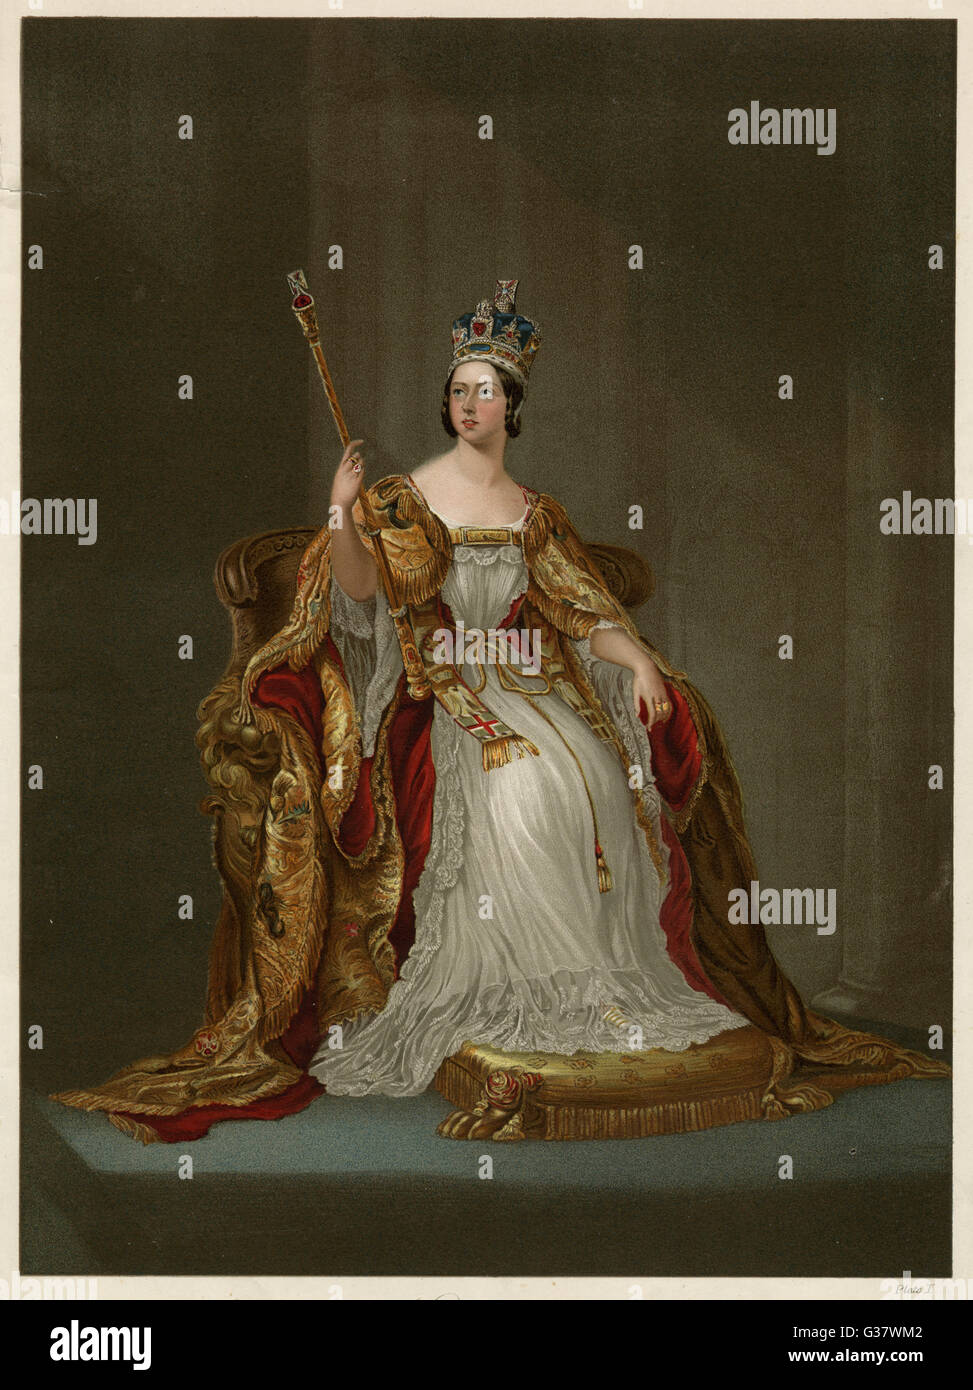 QUEEN VICTORIA  In her Coronation robes, June 1838       Date: 1819 - 1901 - Stock Image